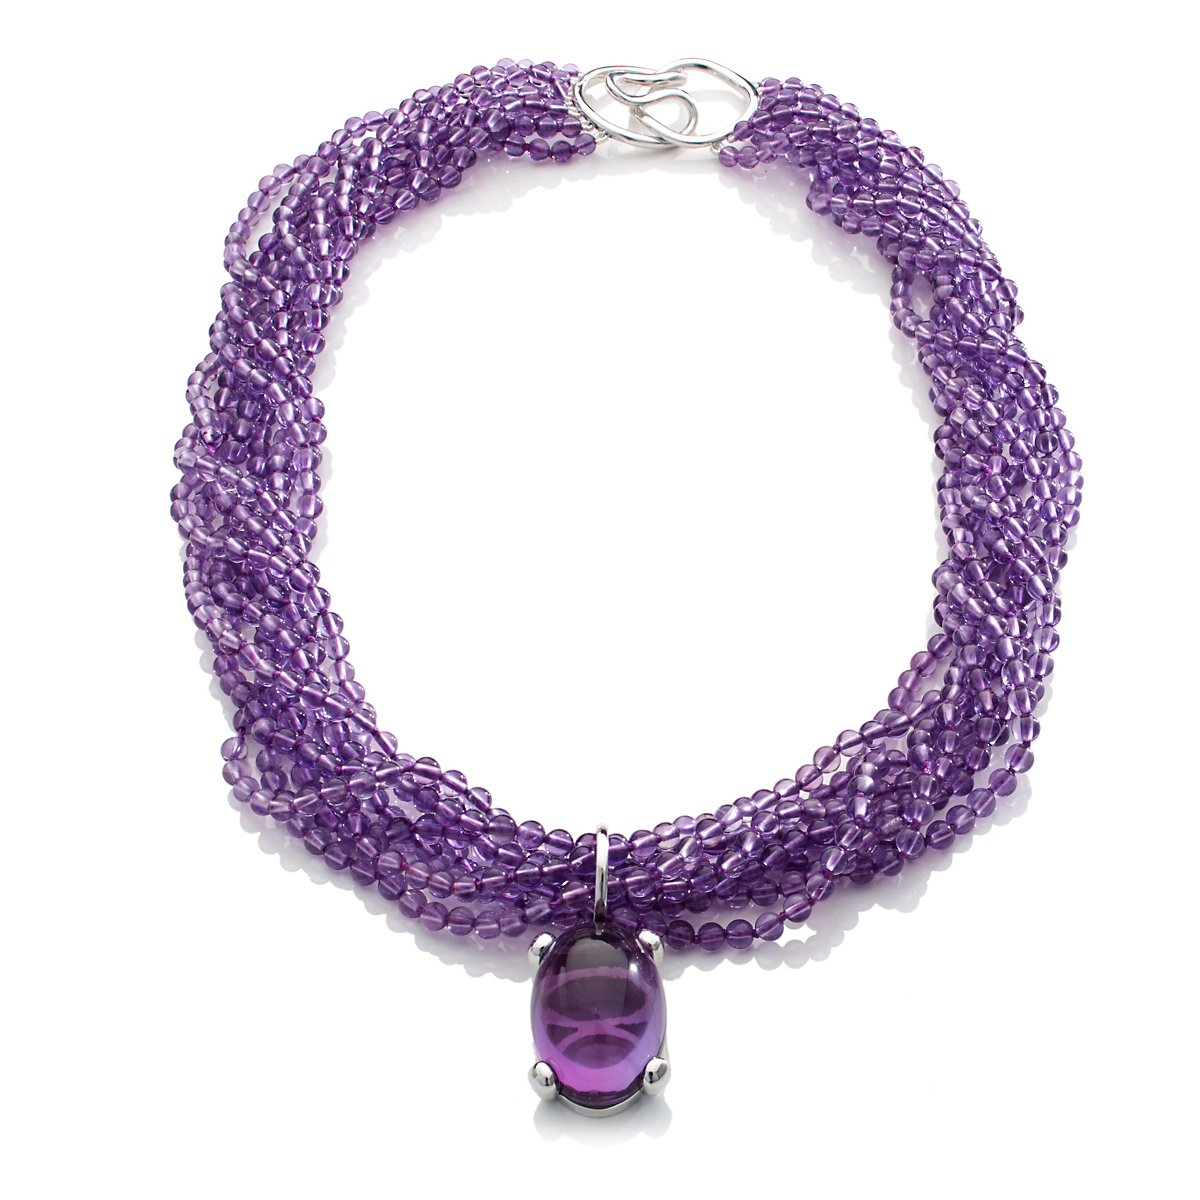 Gump's Eight-Strand Twist & Cabochon Amethyst Necklace